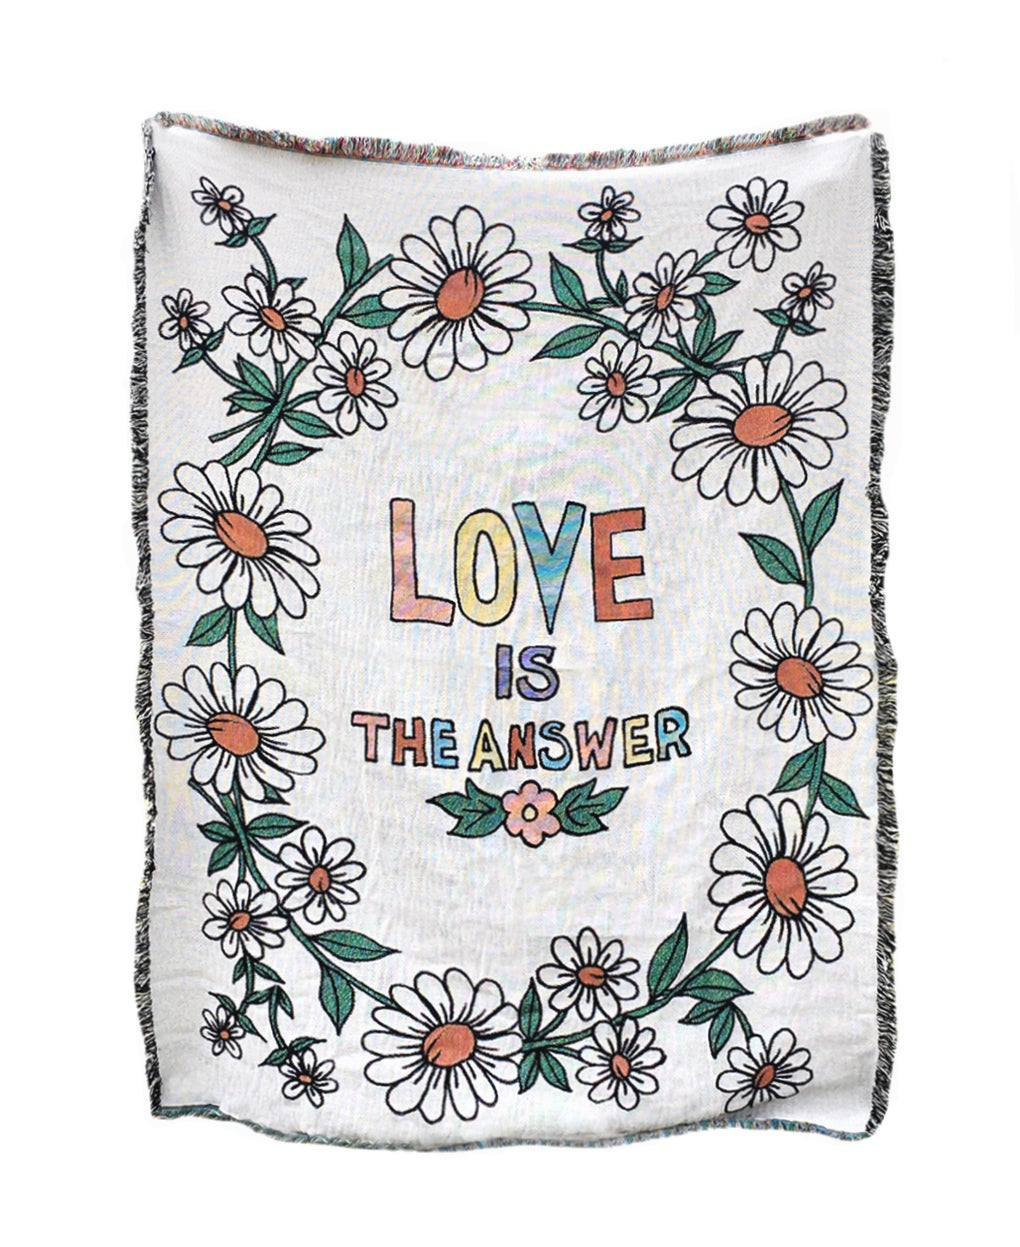 Daisy Chain Love is the Answer Woven Blanket